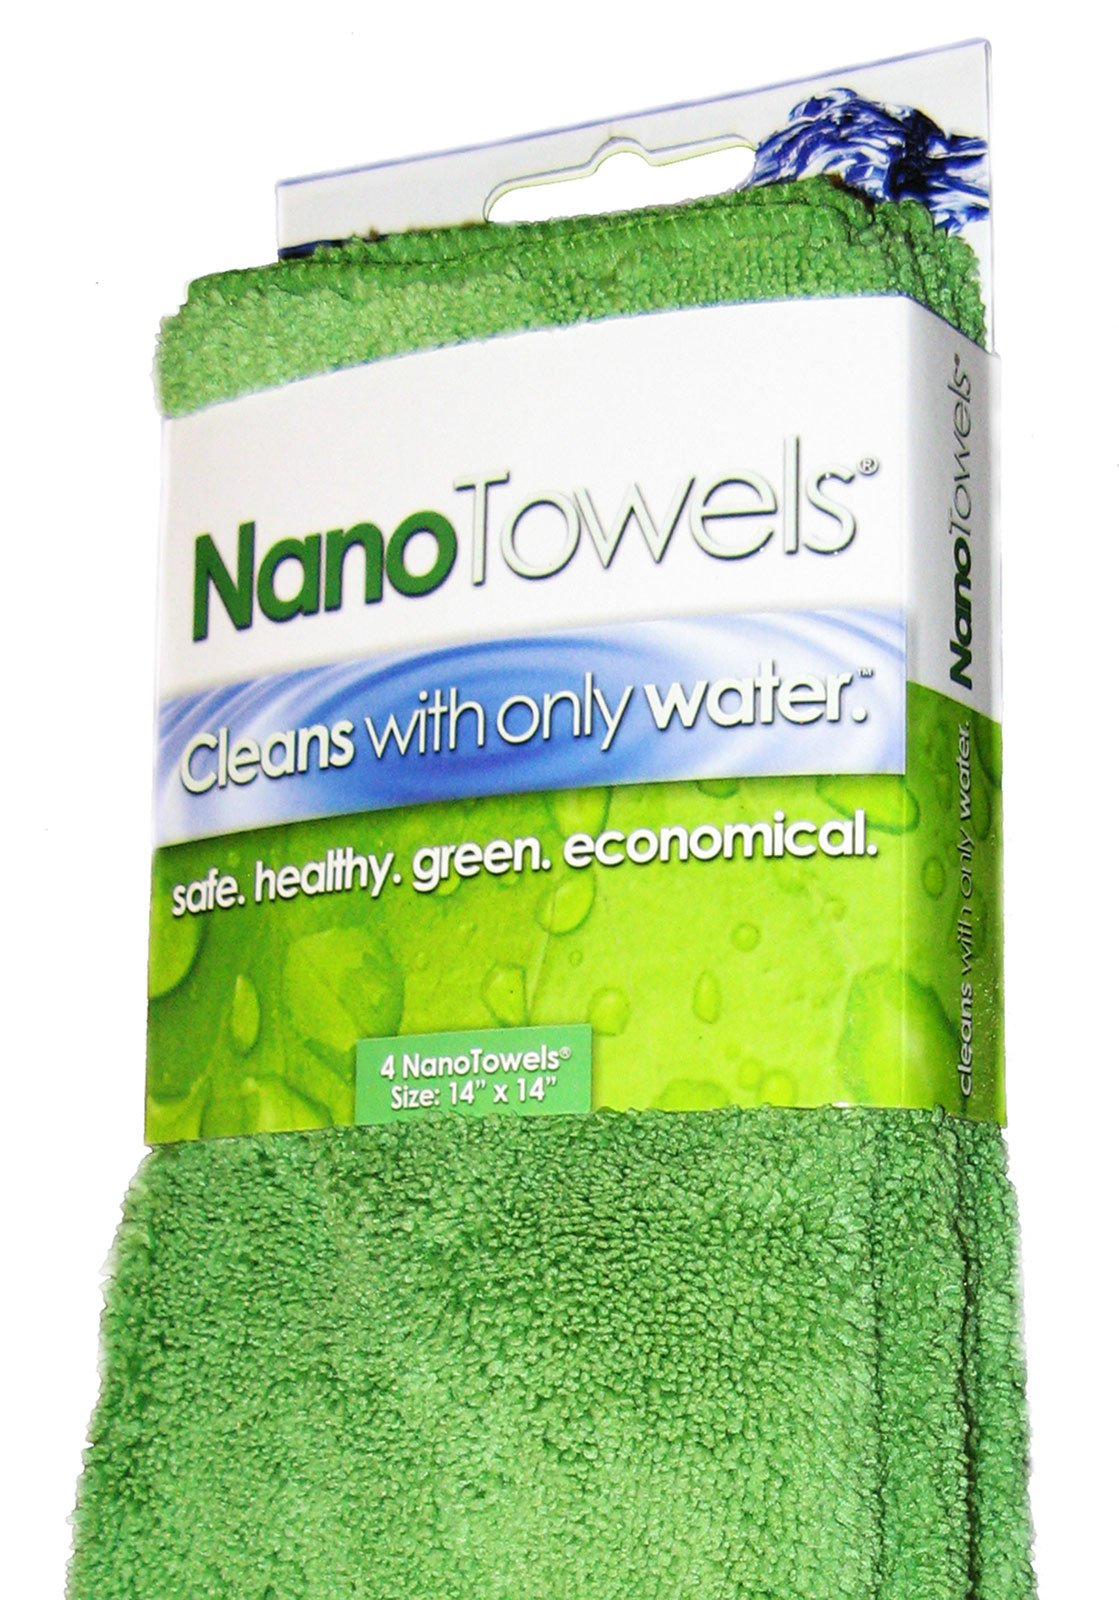 Life Miracle Nano Towels – Amazing Eco Fabric That Cleans Virtually Any Surface with Only Water. No More Paper Towels Or Toxic Chemicals.